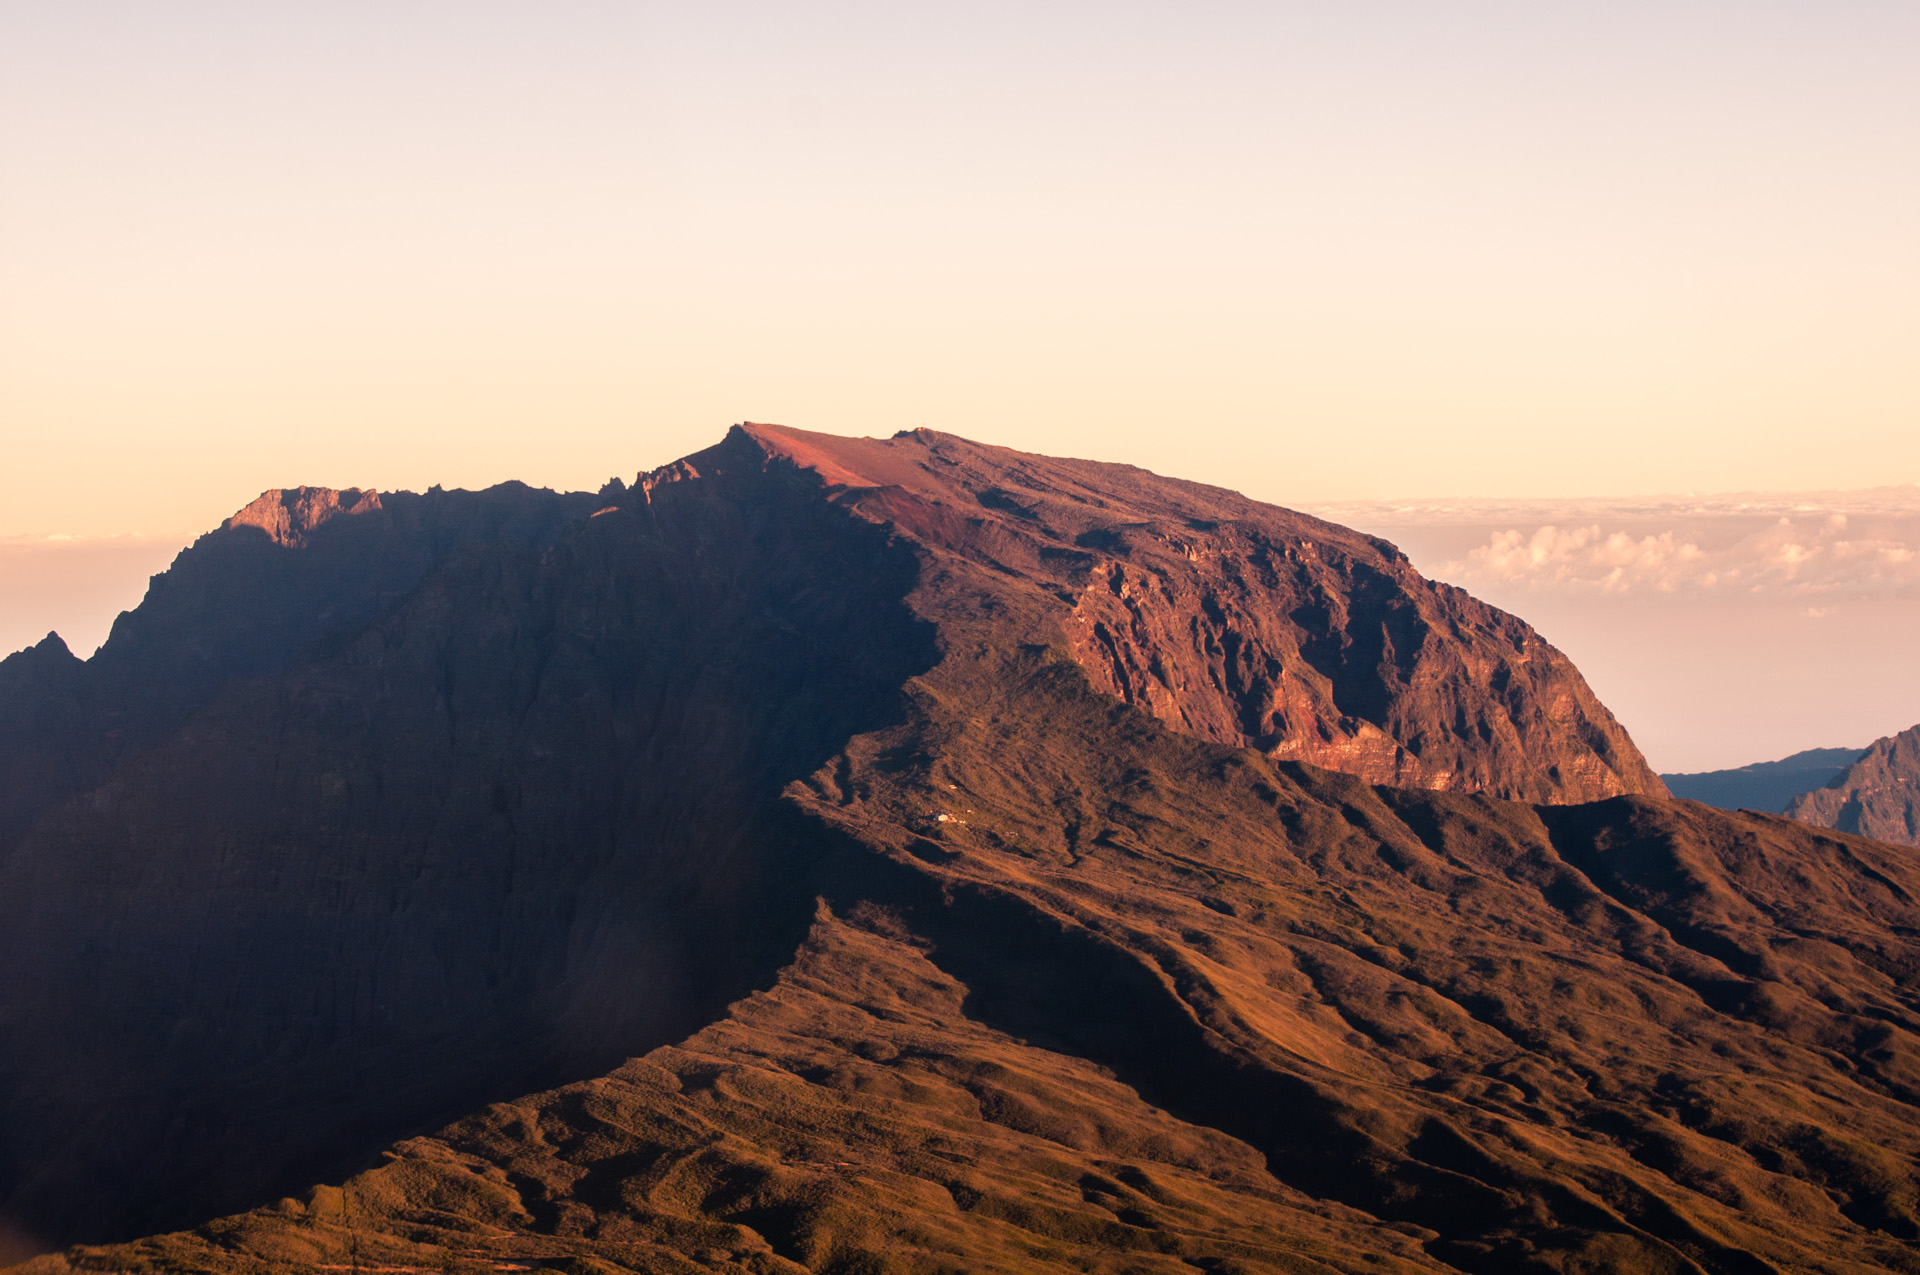 Renewables in France: Reunion Island is taking a lead